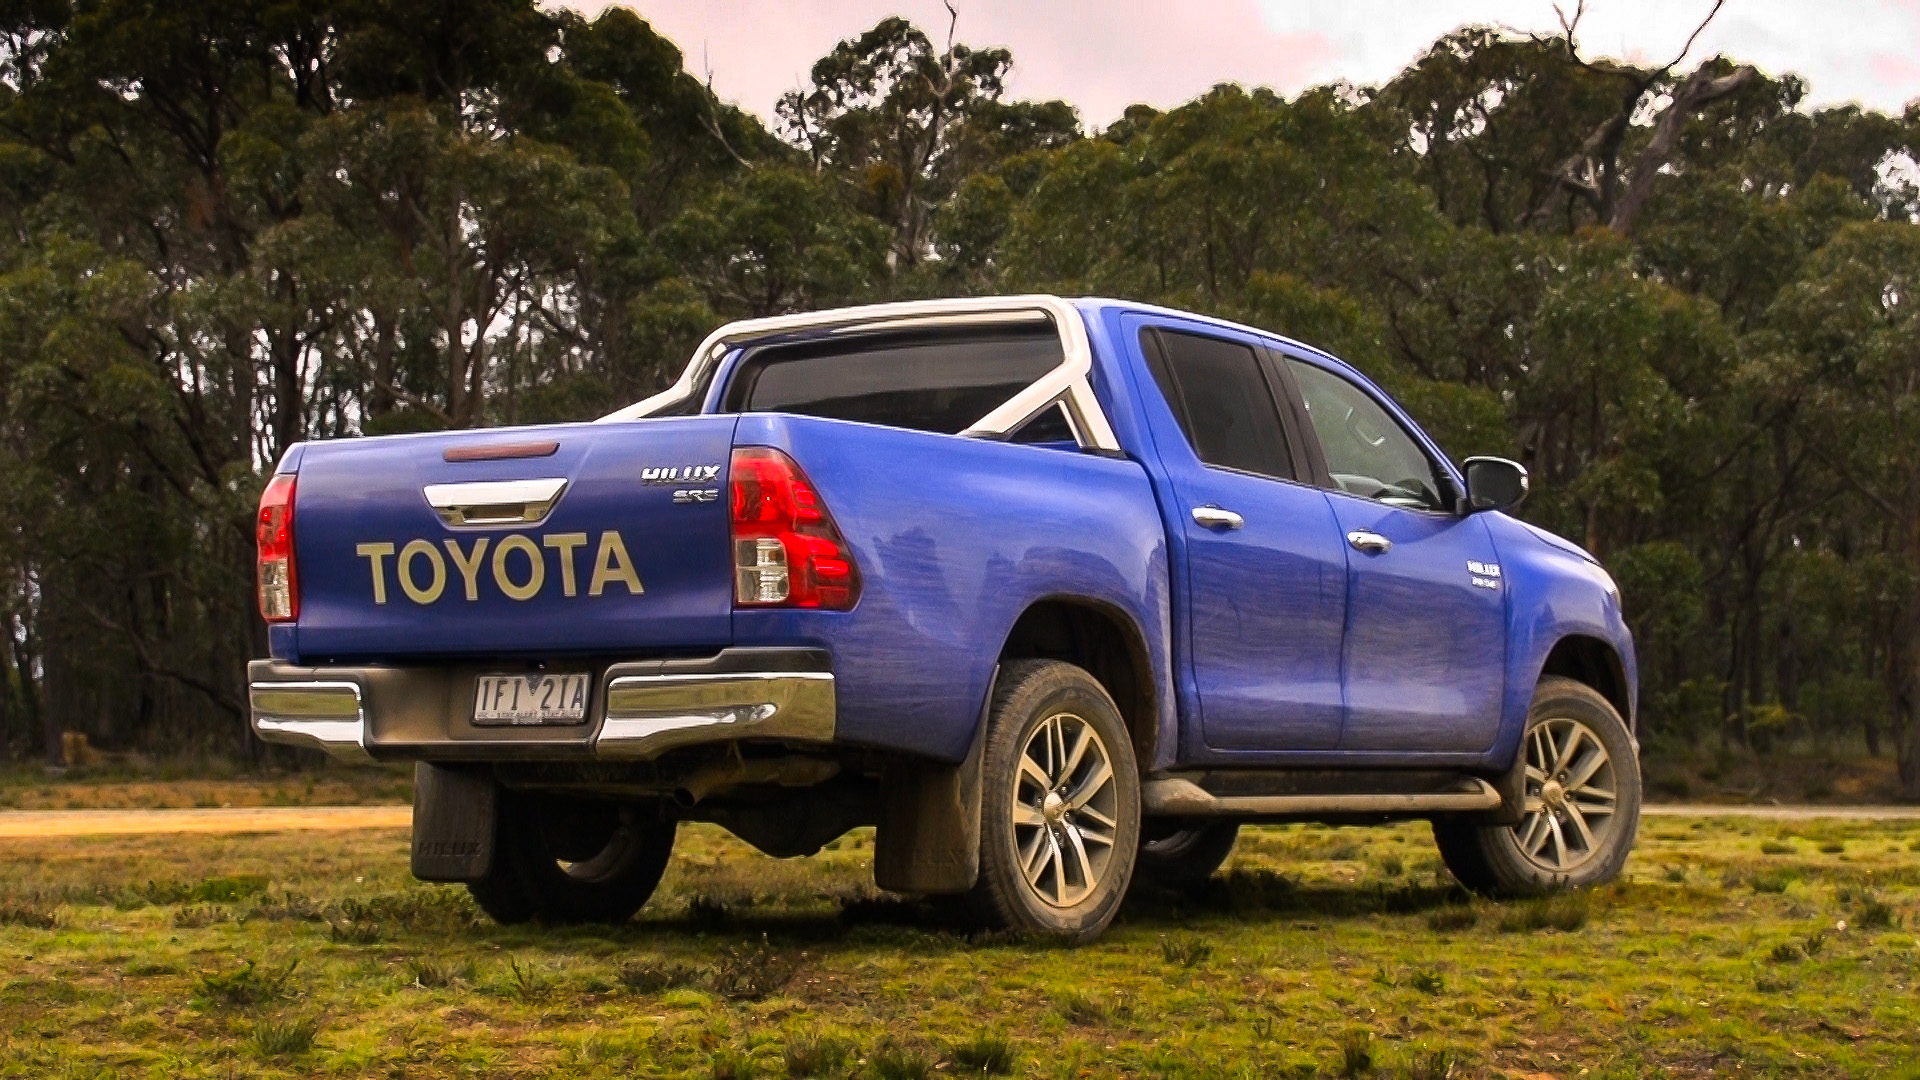 Mitsubishi Suv 2015 >> 2016 Toyota HiLux Review | CarAdvice